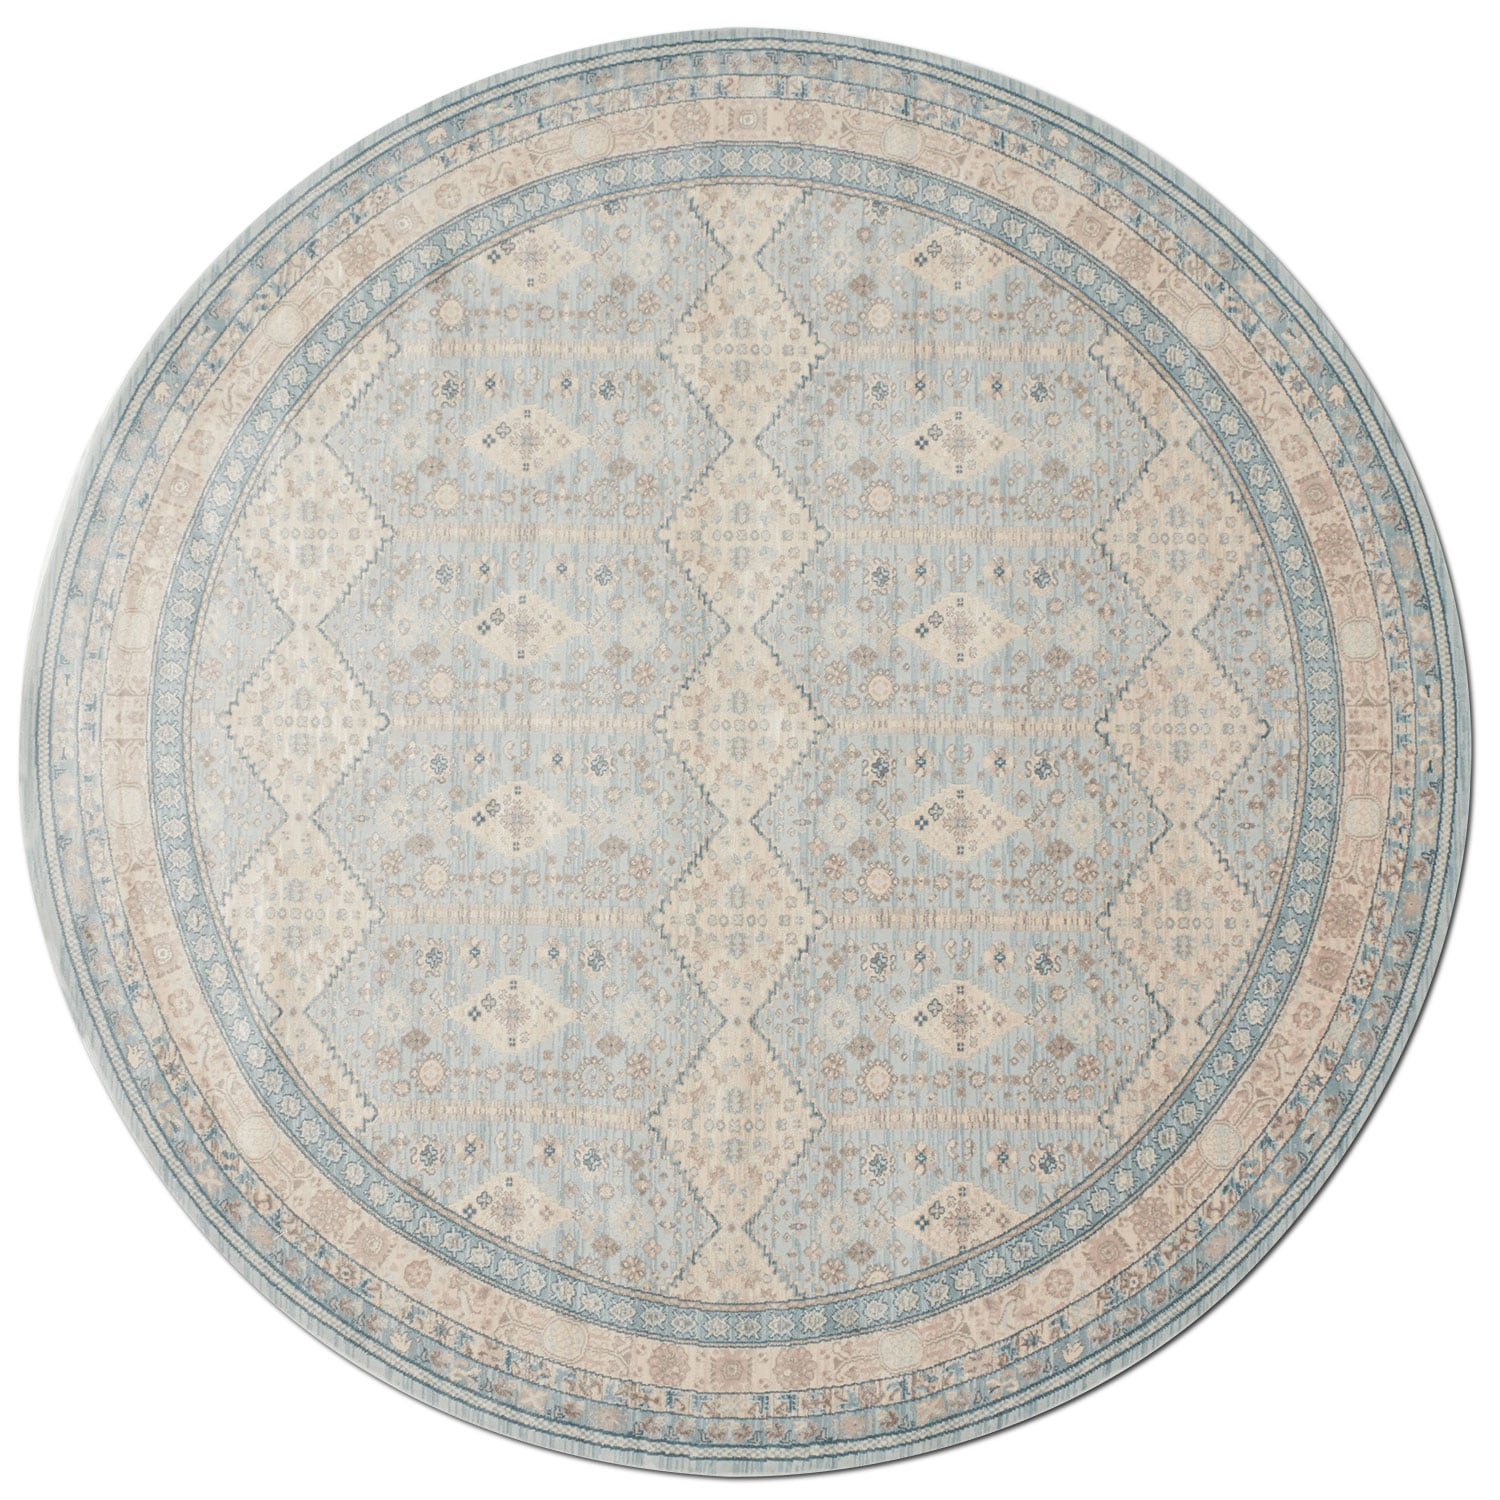 Rugs - Ella Rose 9' Round Rug - Mist and Stone